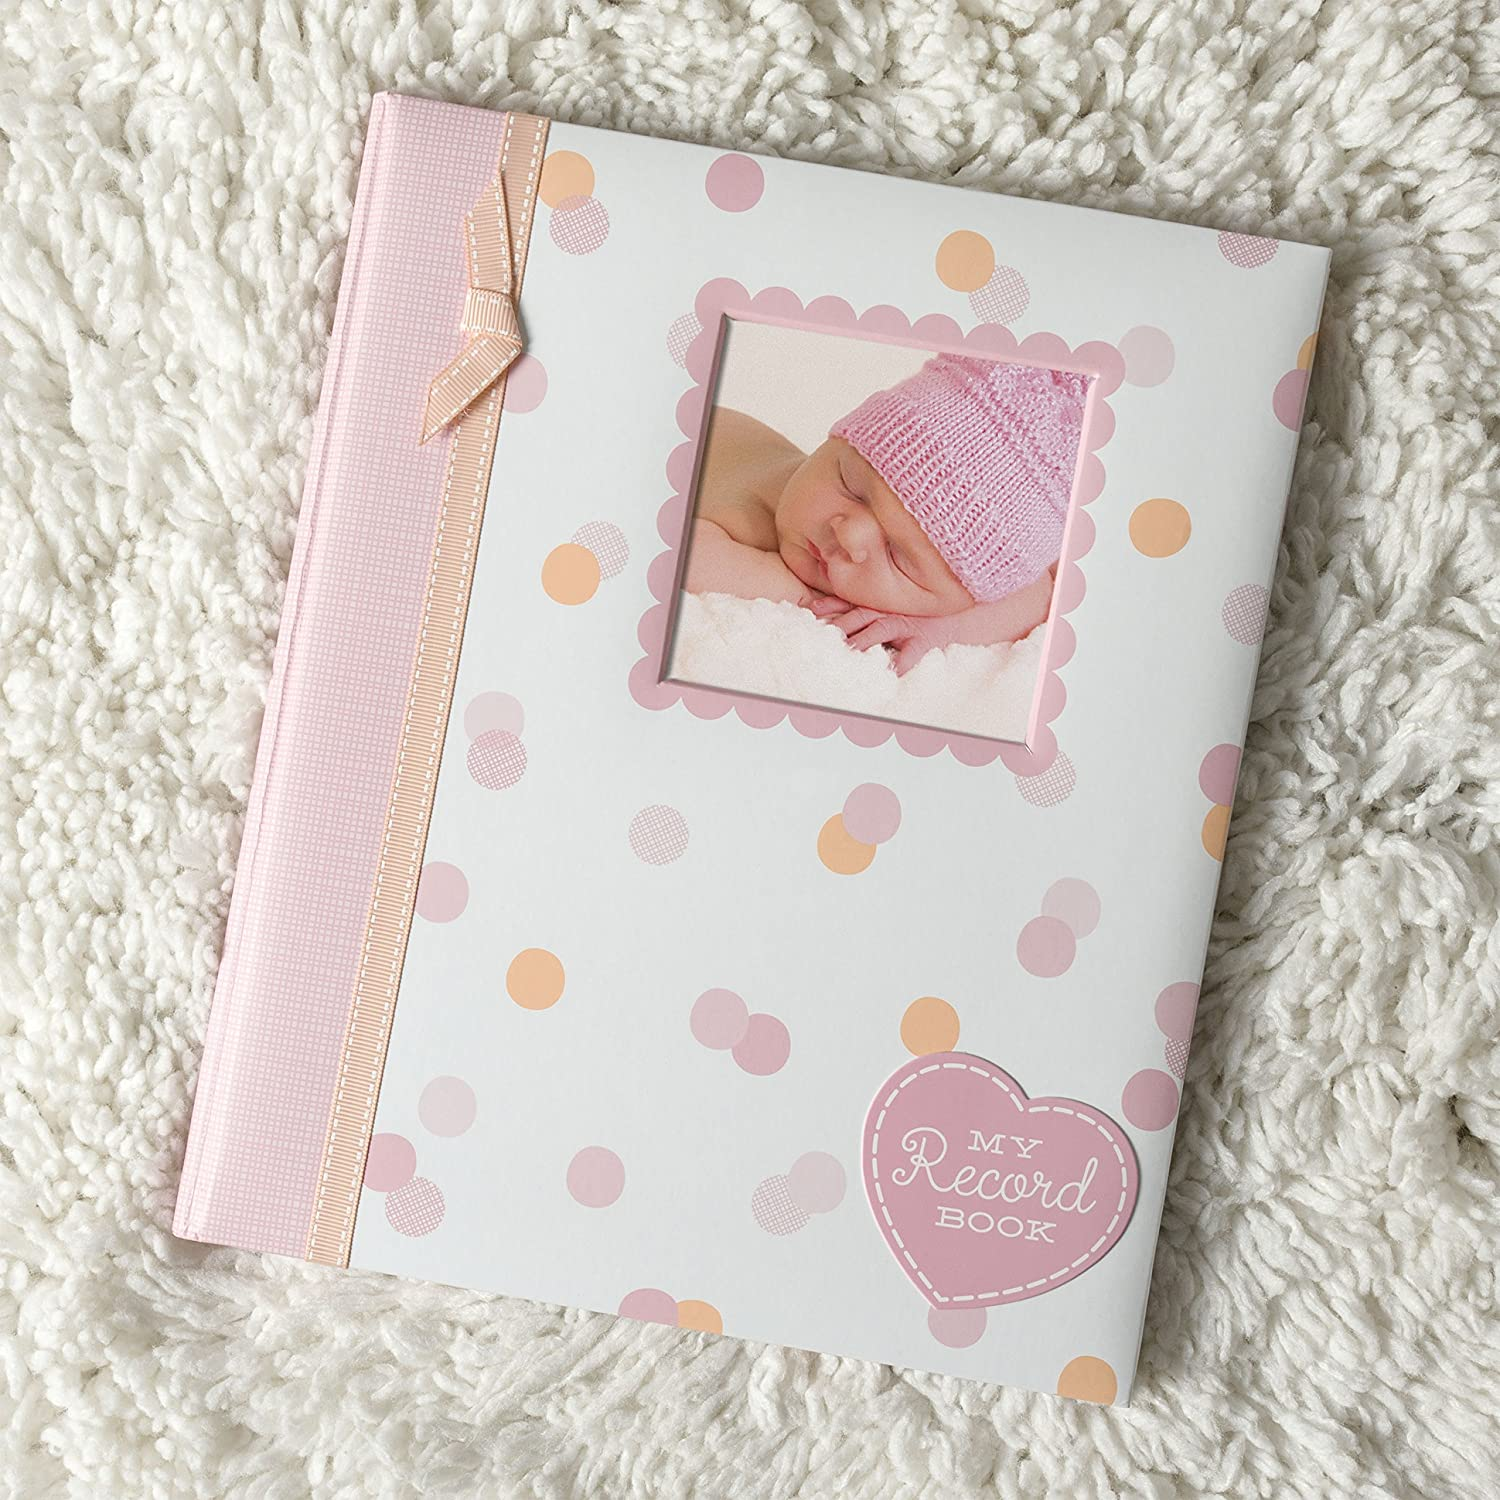 Pink Cherish Every Precious Moment of Your Babys First Years Perfect Baby Shower Gift Lil Peach Birdie Baby Five Year Memory Book Photo Journal